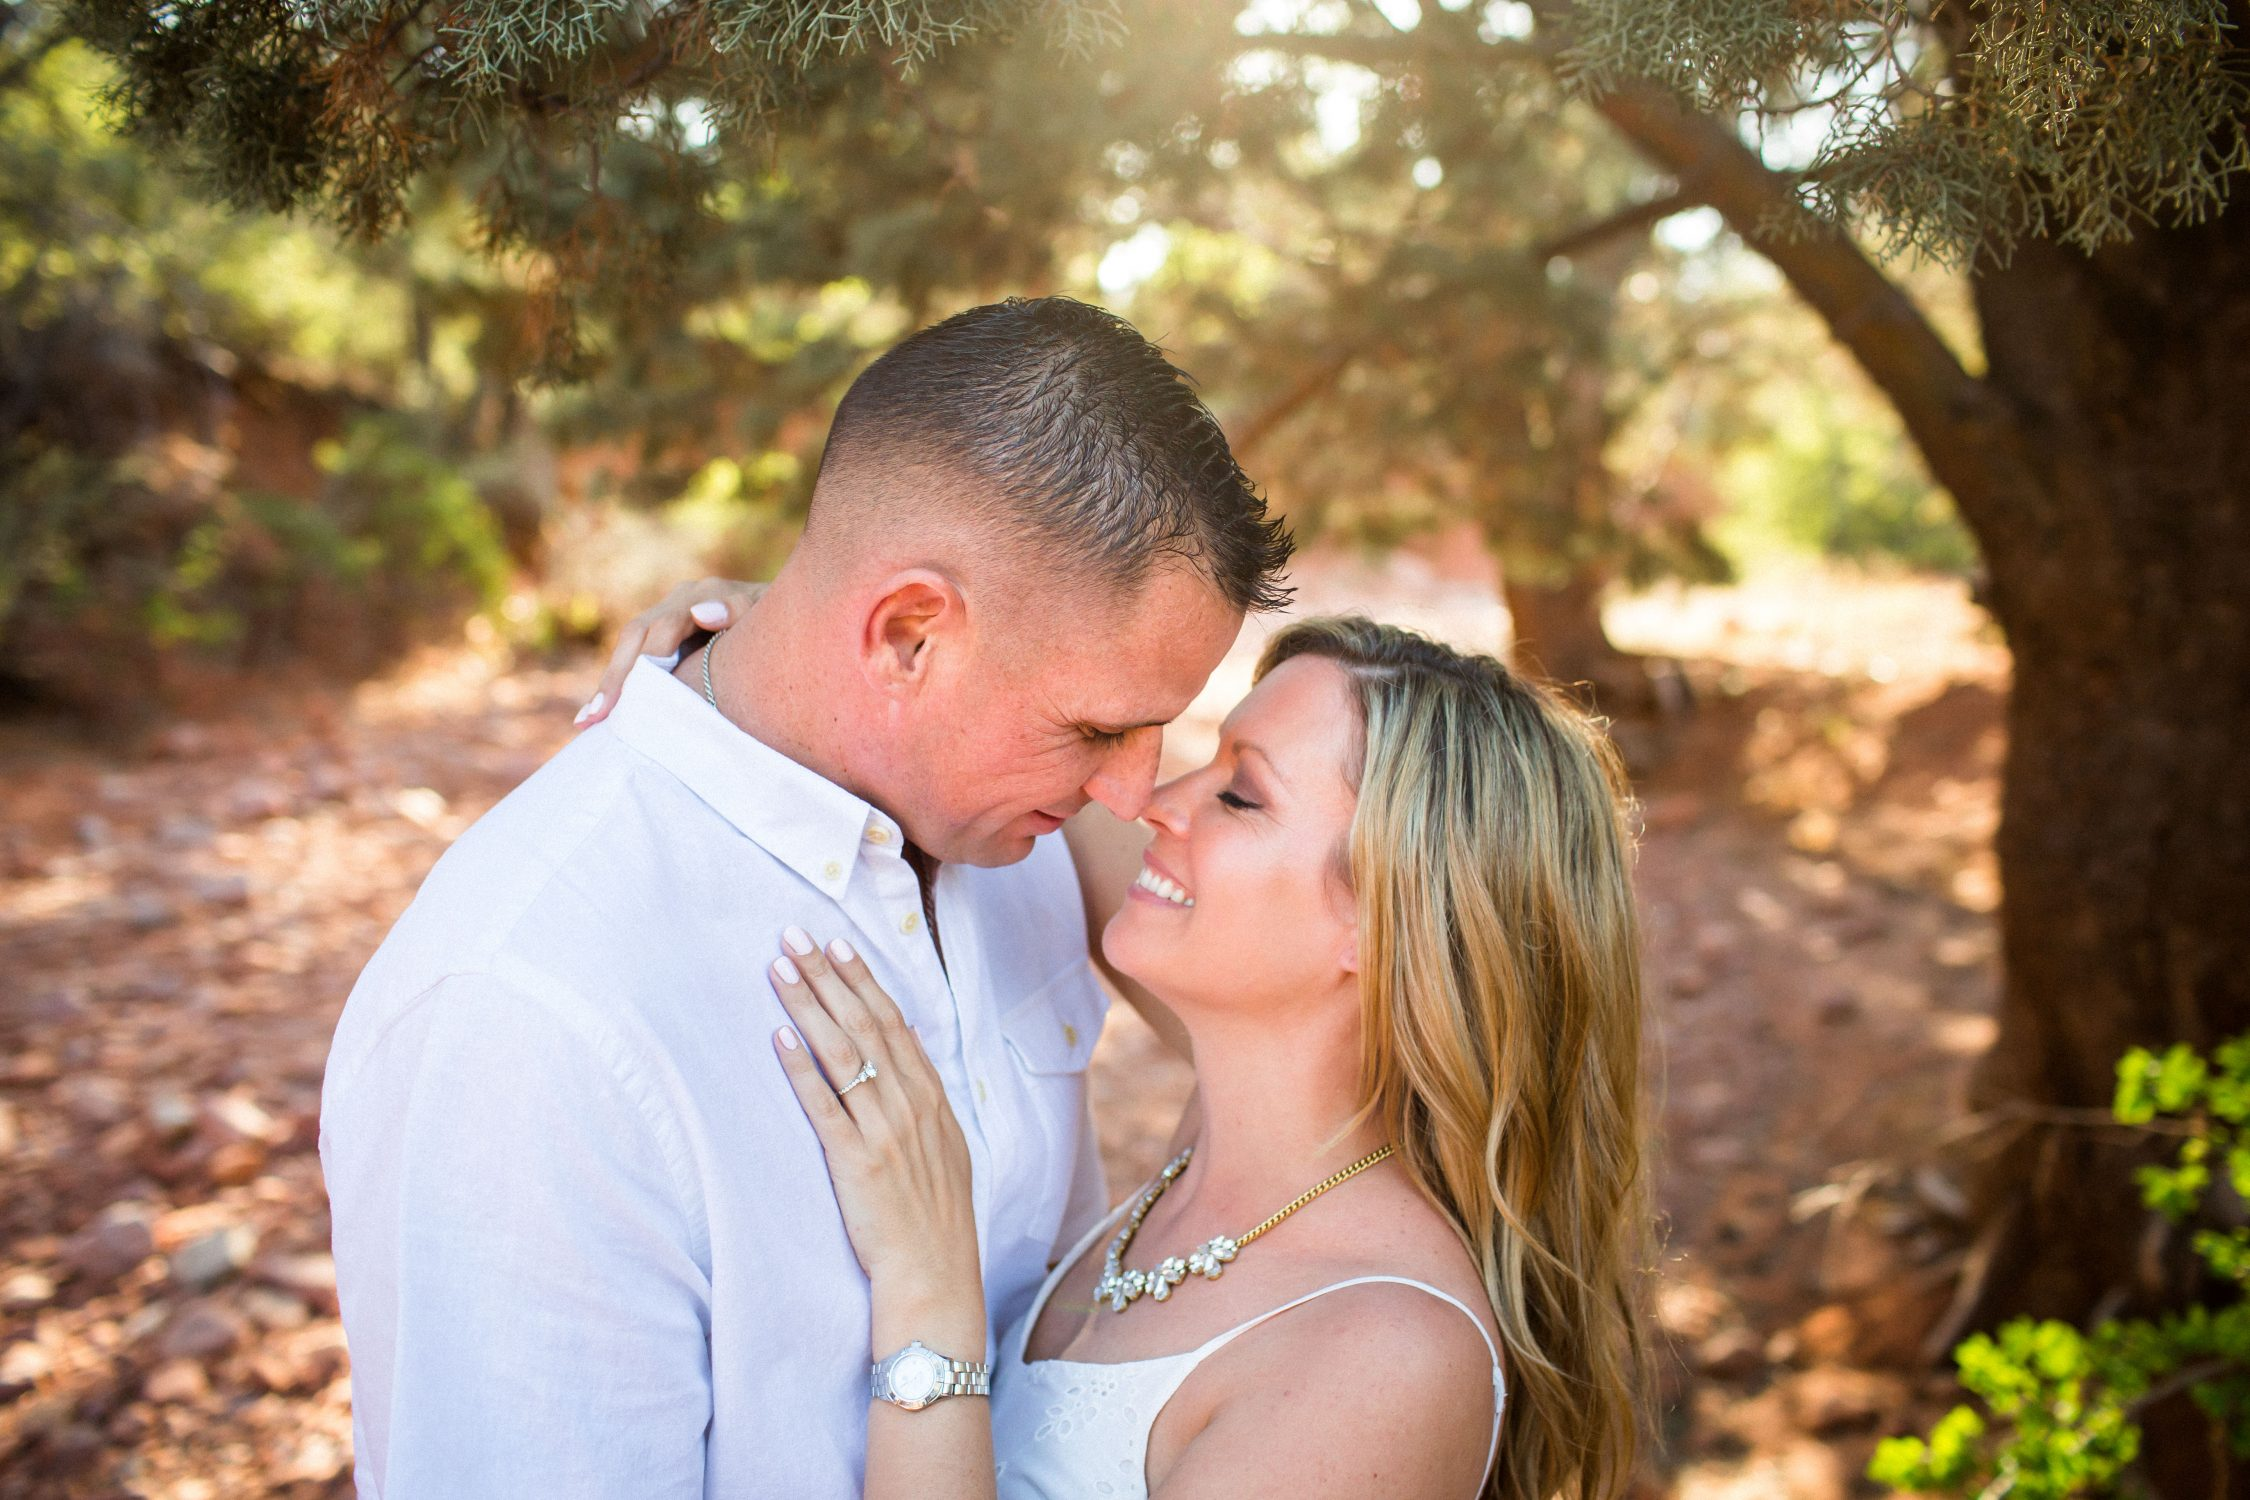 Sedona engagement session, Sedona wedding photographer, Sedona destination engagement photos, northern arizona wedding photographer, northern arizona engagement photographer